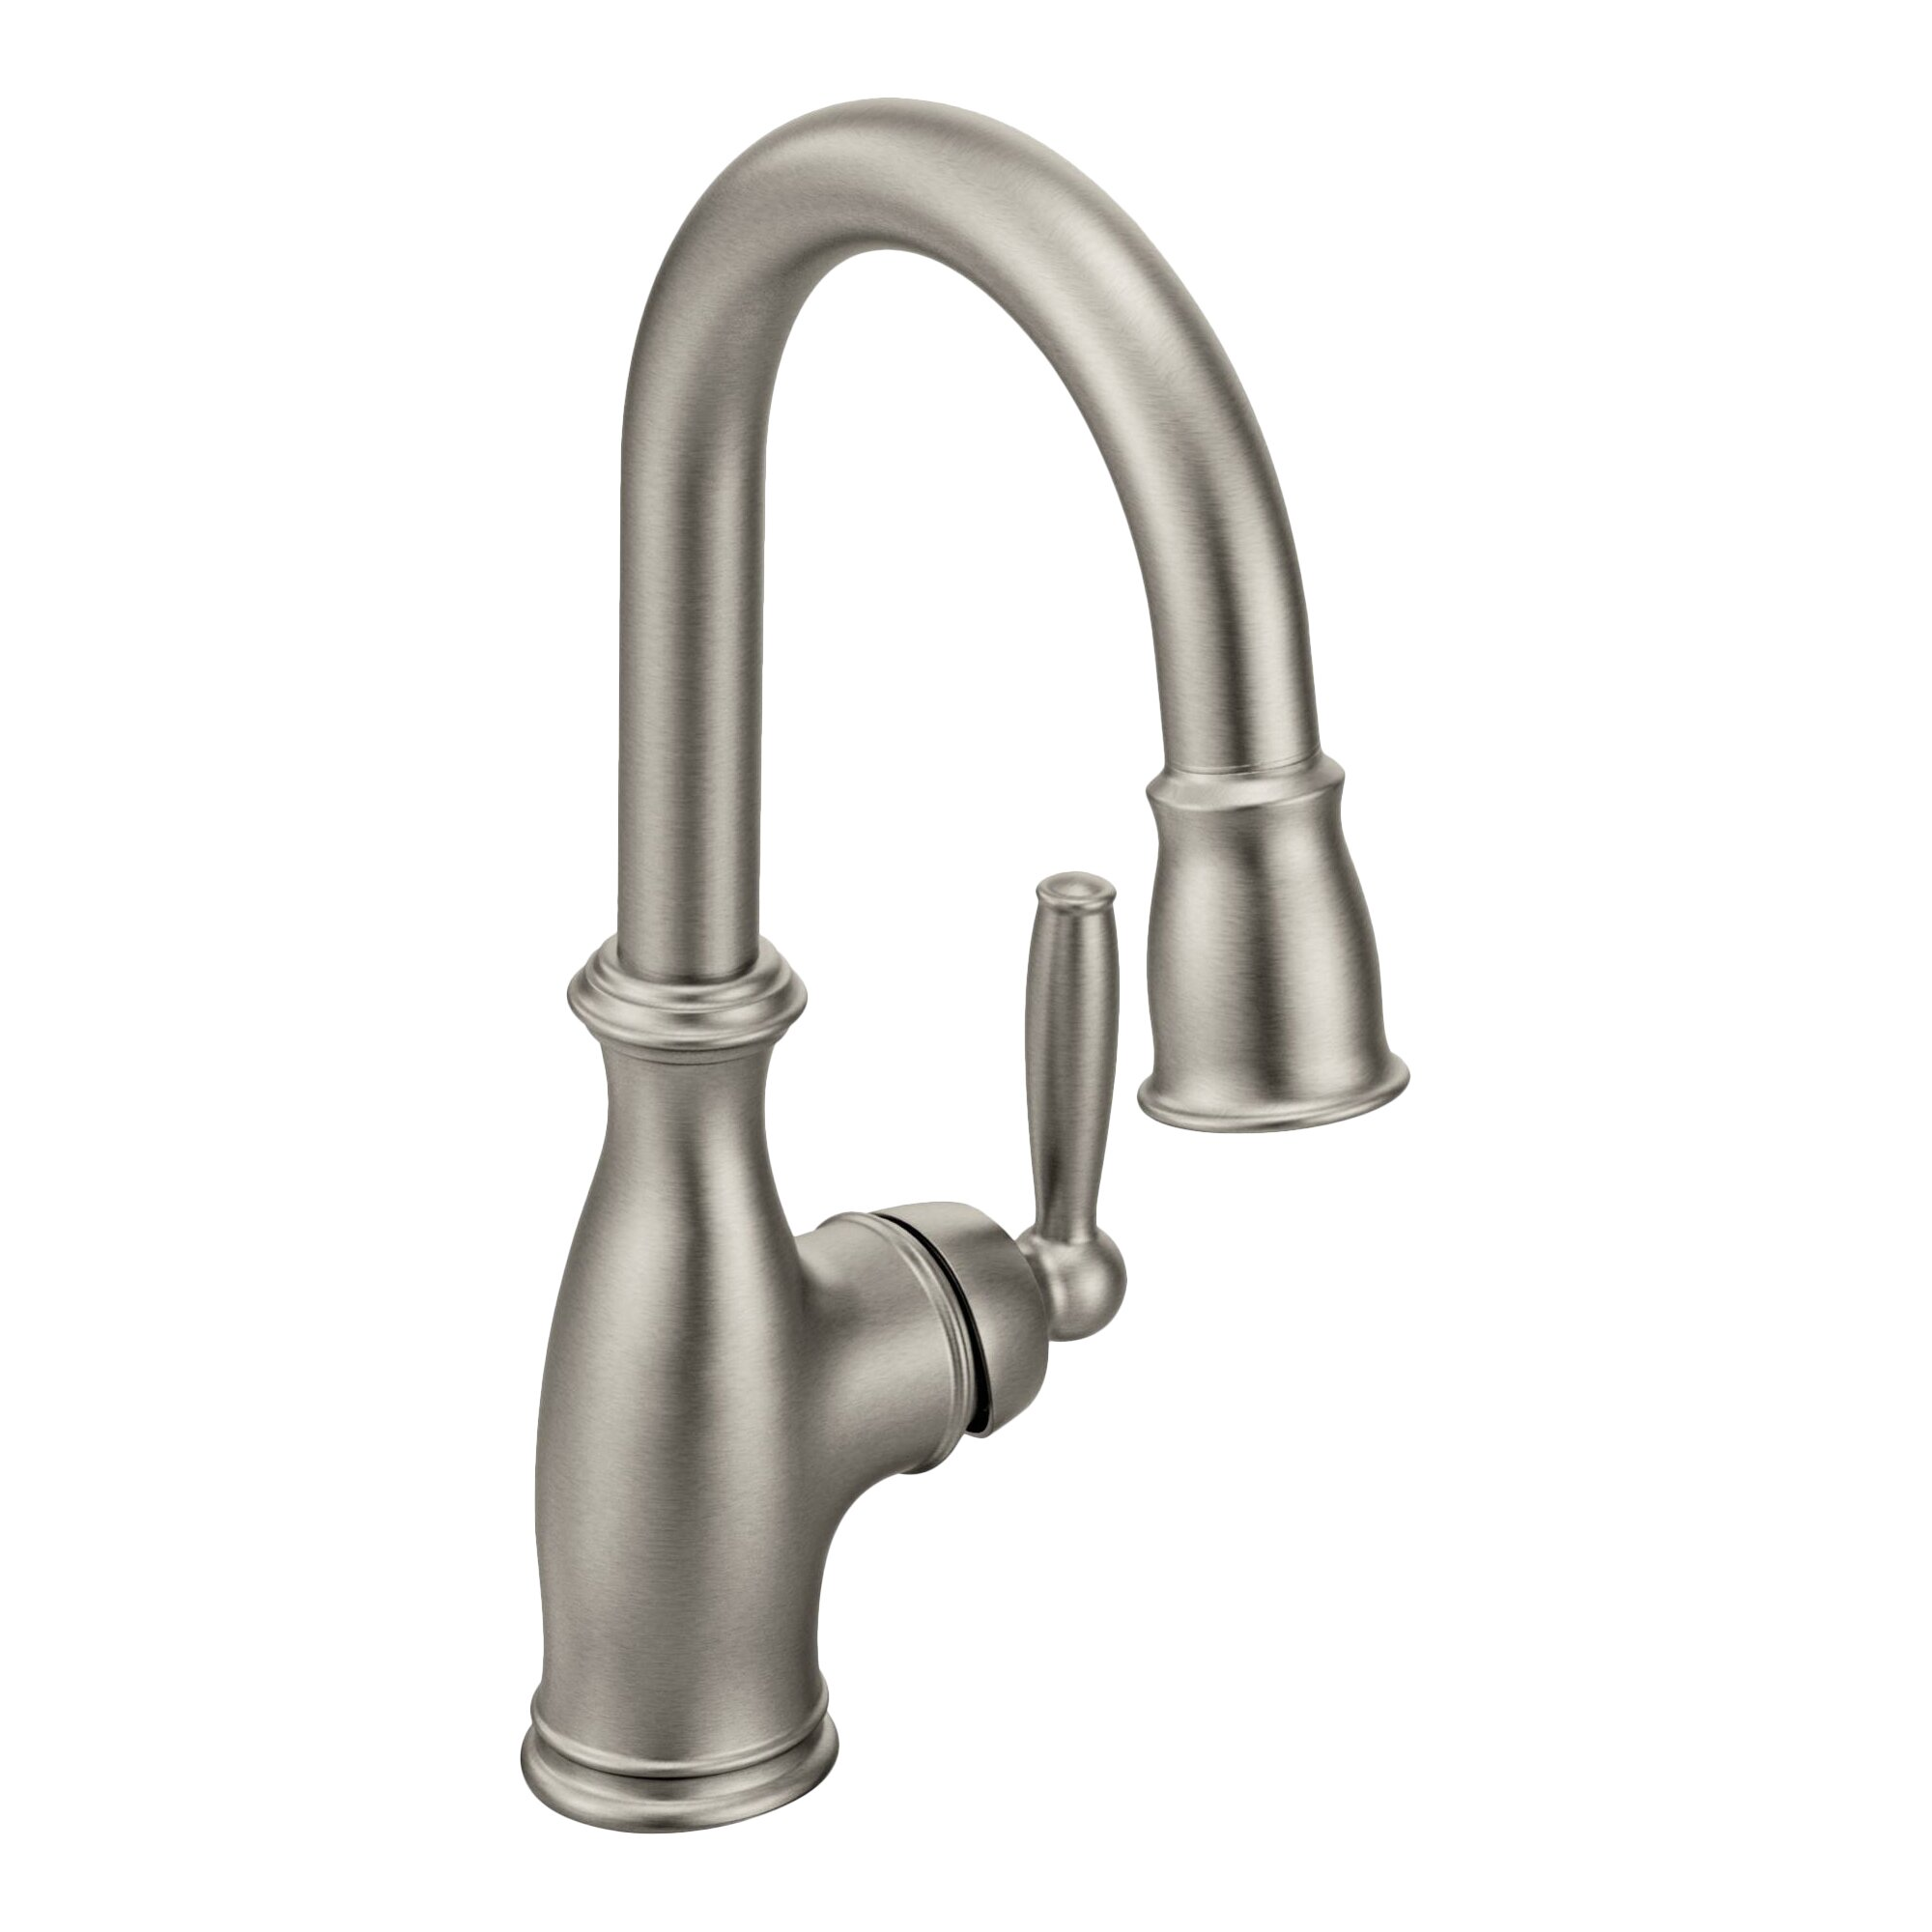 Moen Brantford Single Handle Bar Faucets Amp Reviews Wayfair